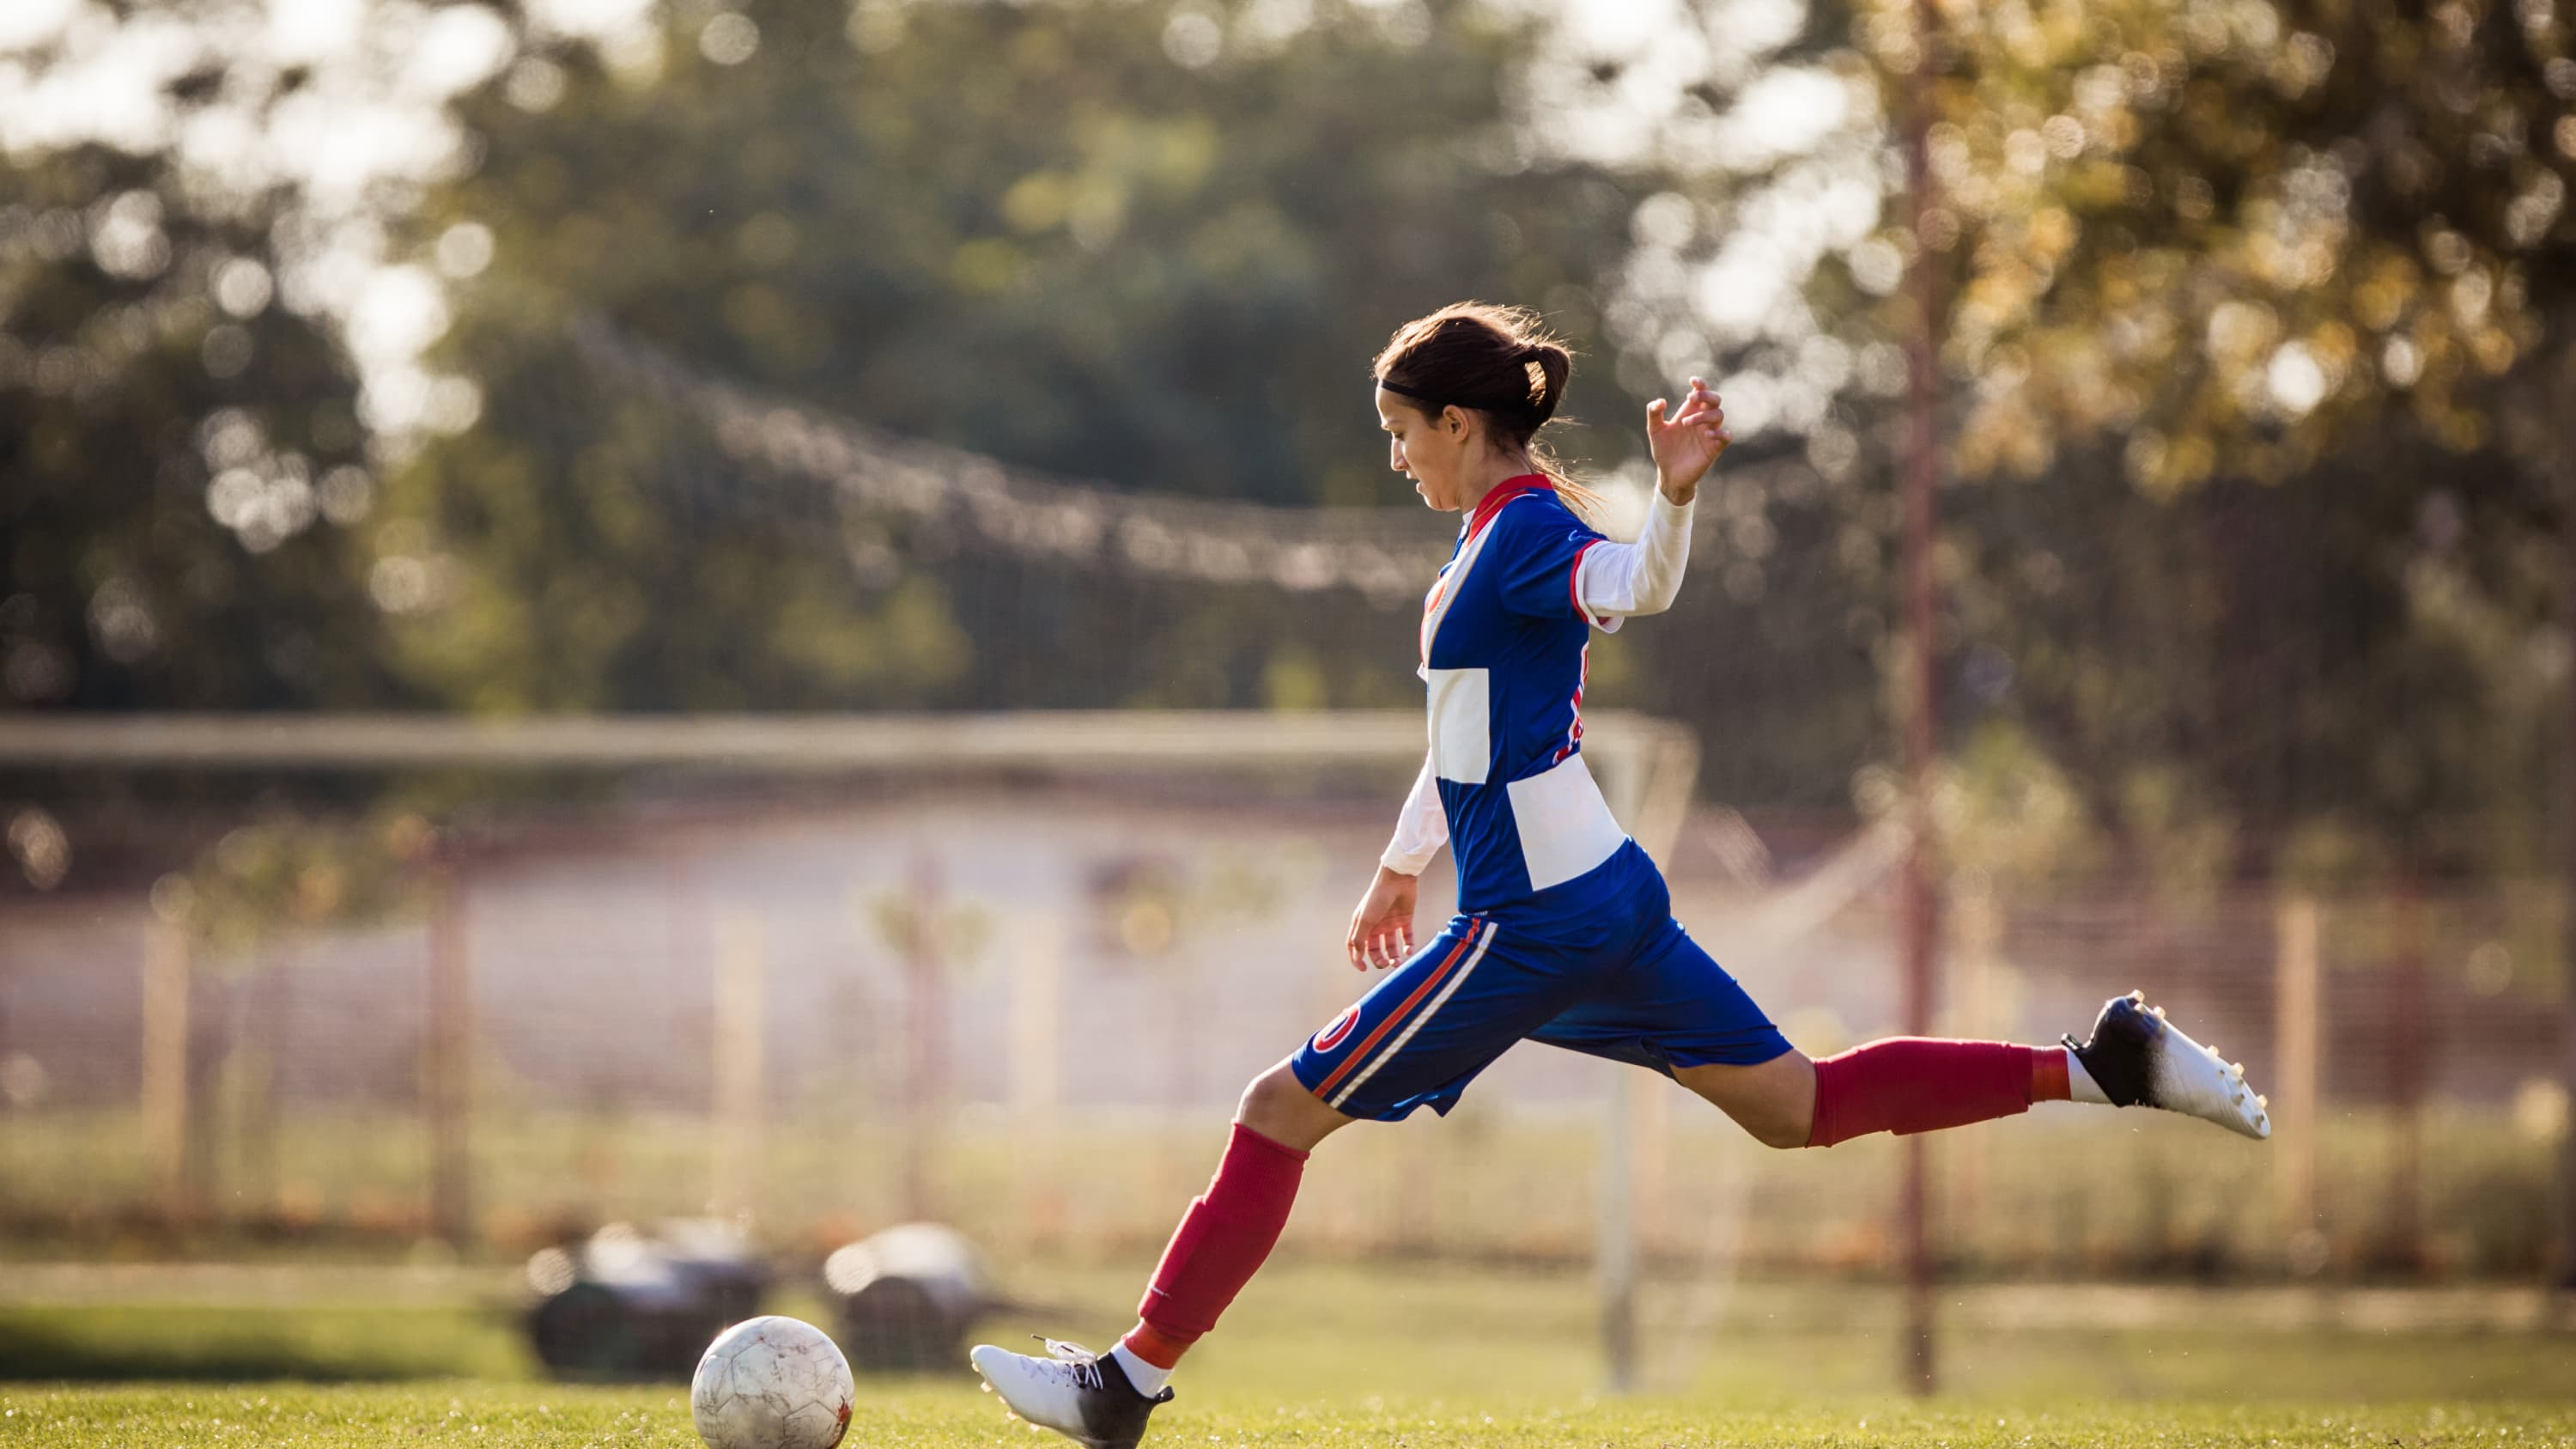 Female soccer player, who may be more at risk for ACL injury than her male peers